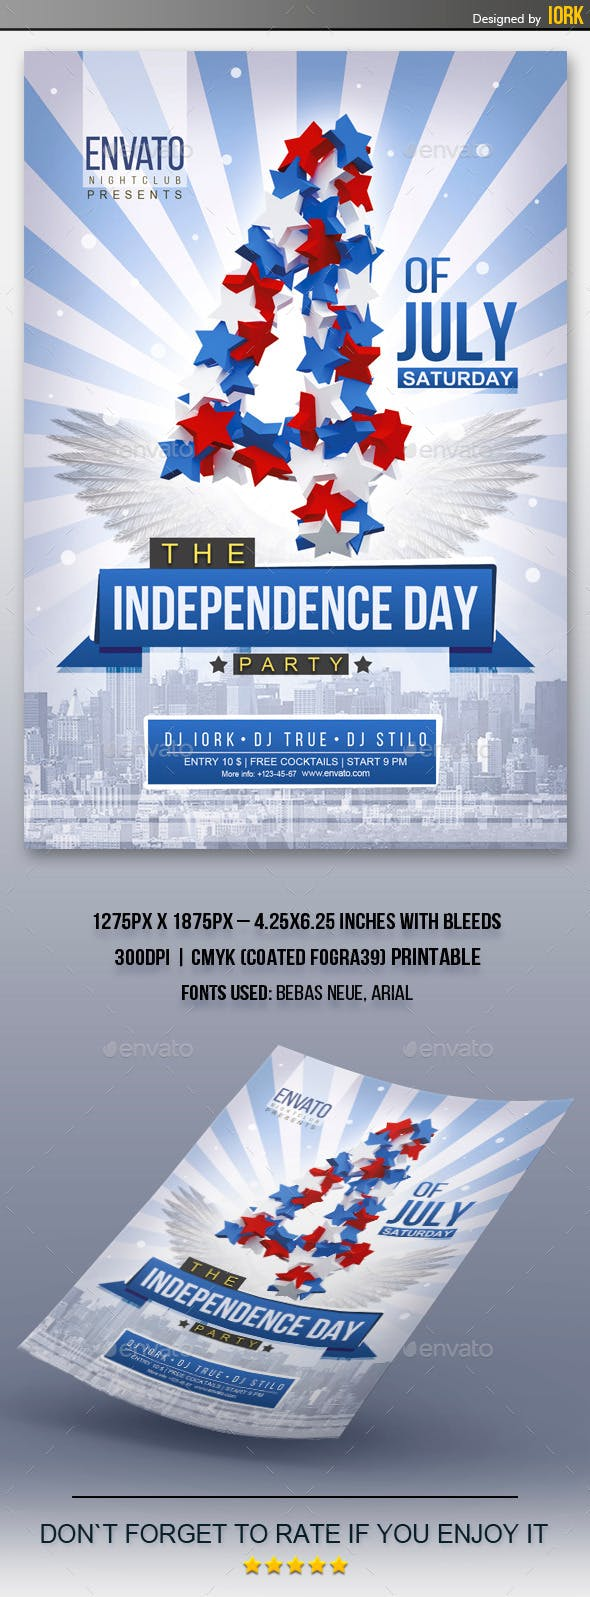 independence day flyer events flyers